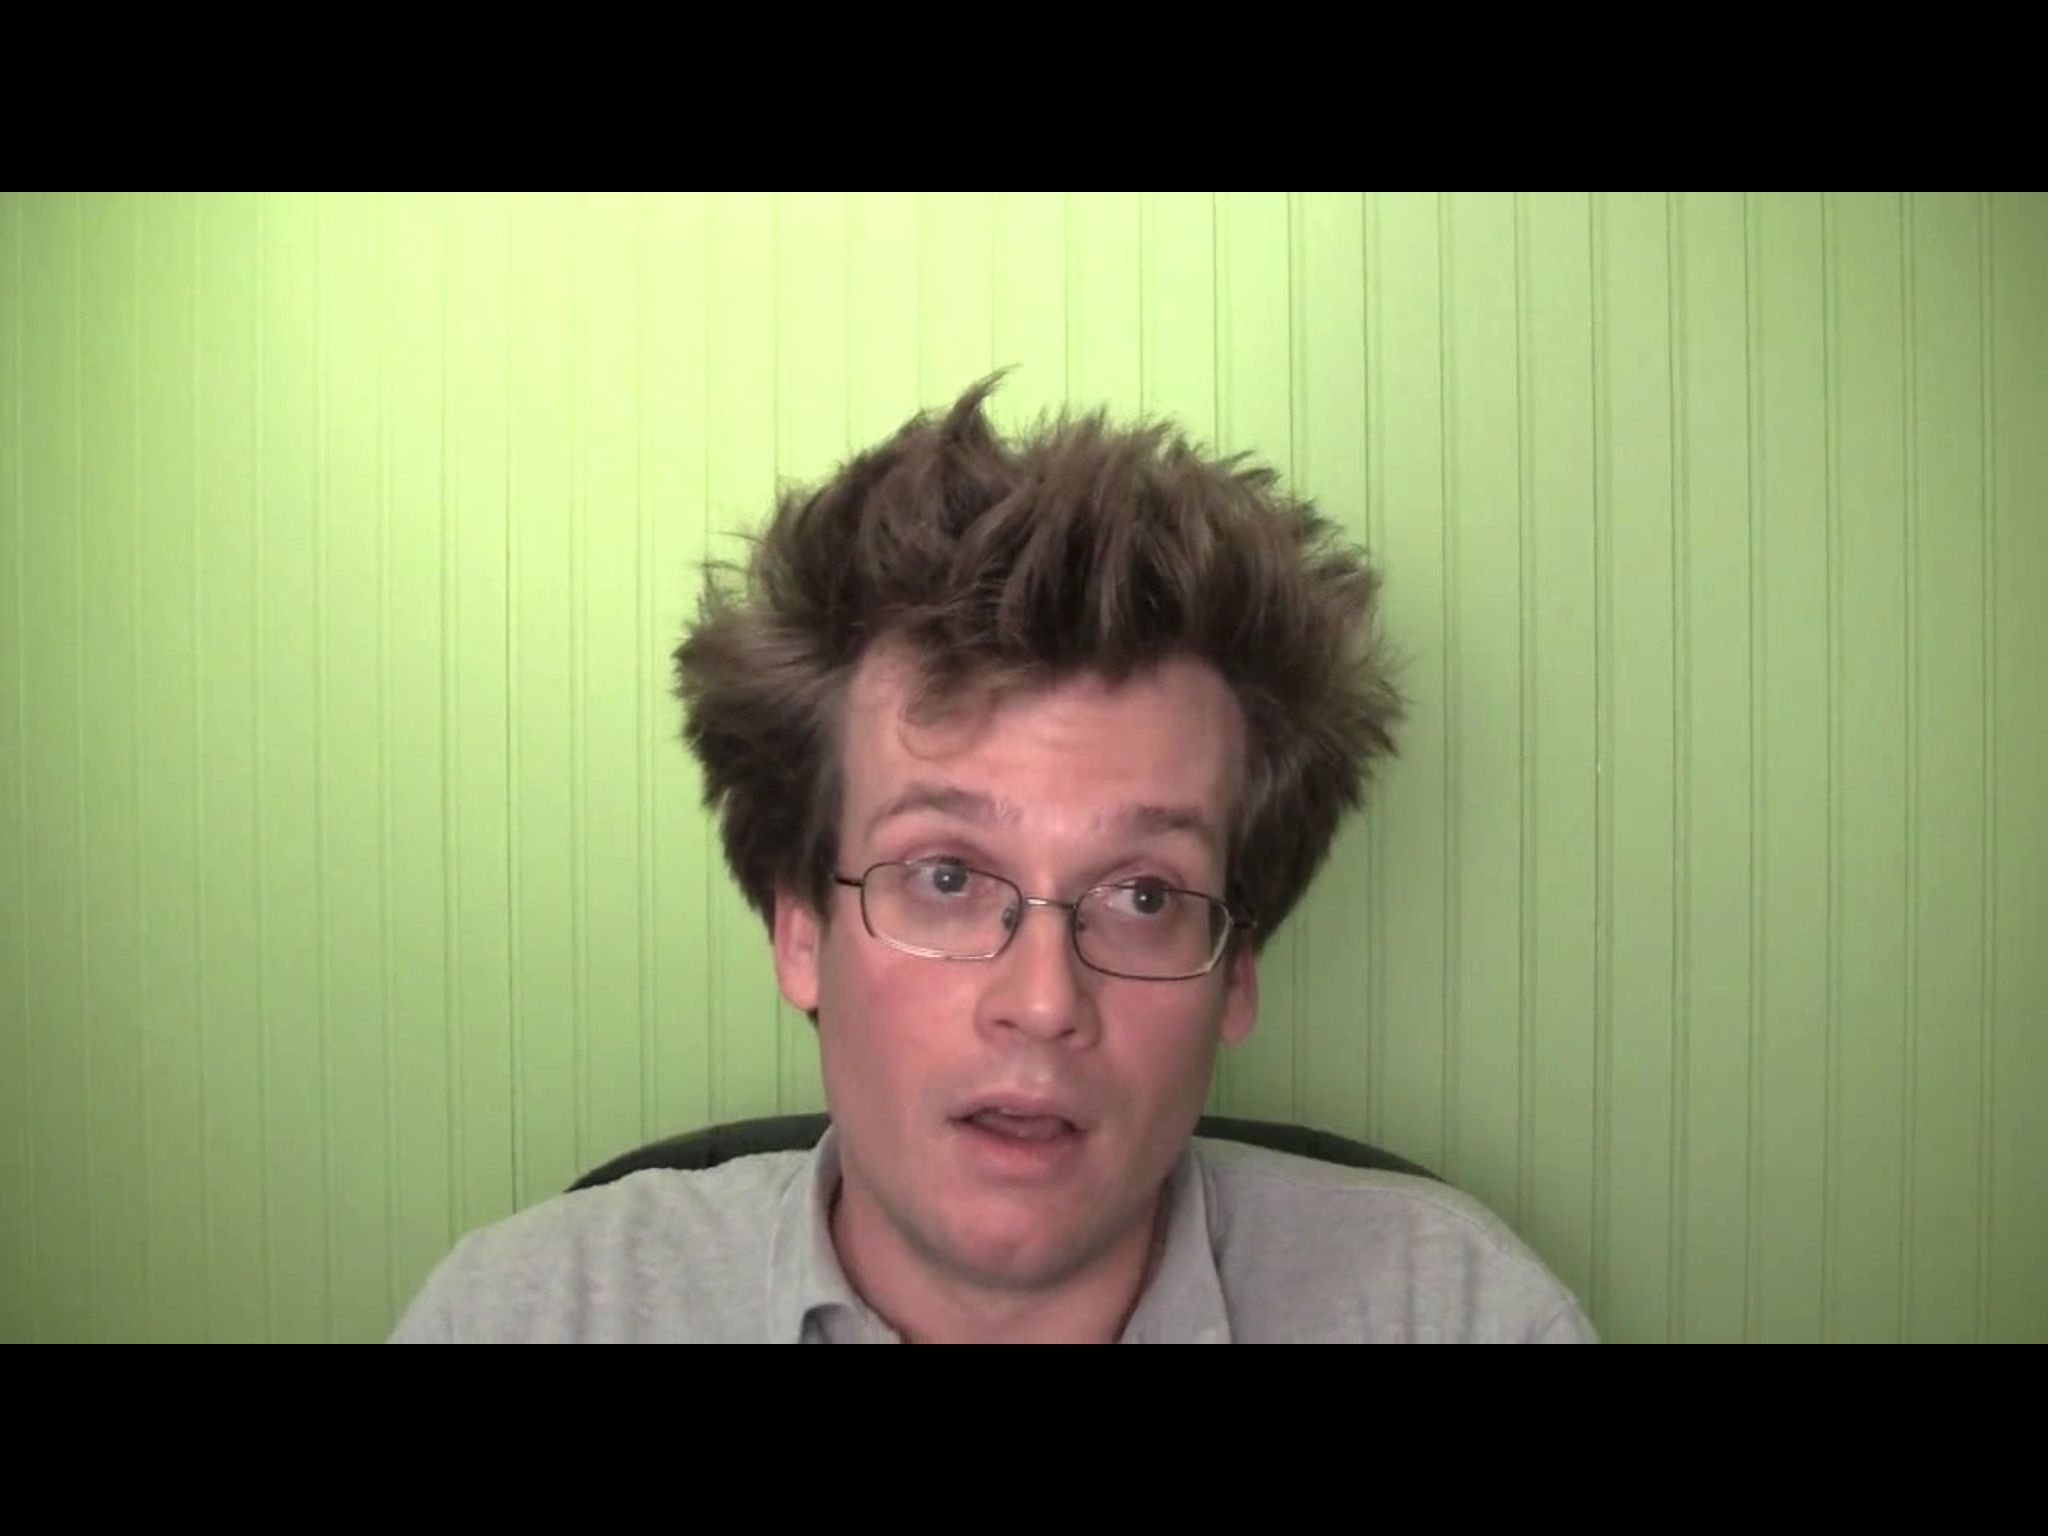 John Green's stressed out! LOOK AT THE PUFF LEVEL!!!